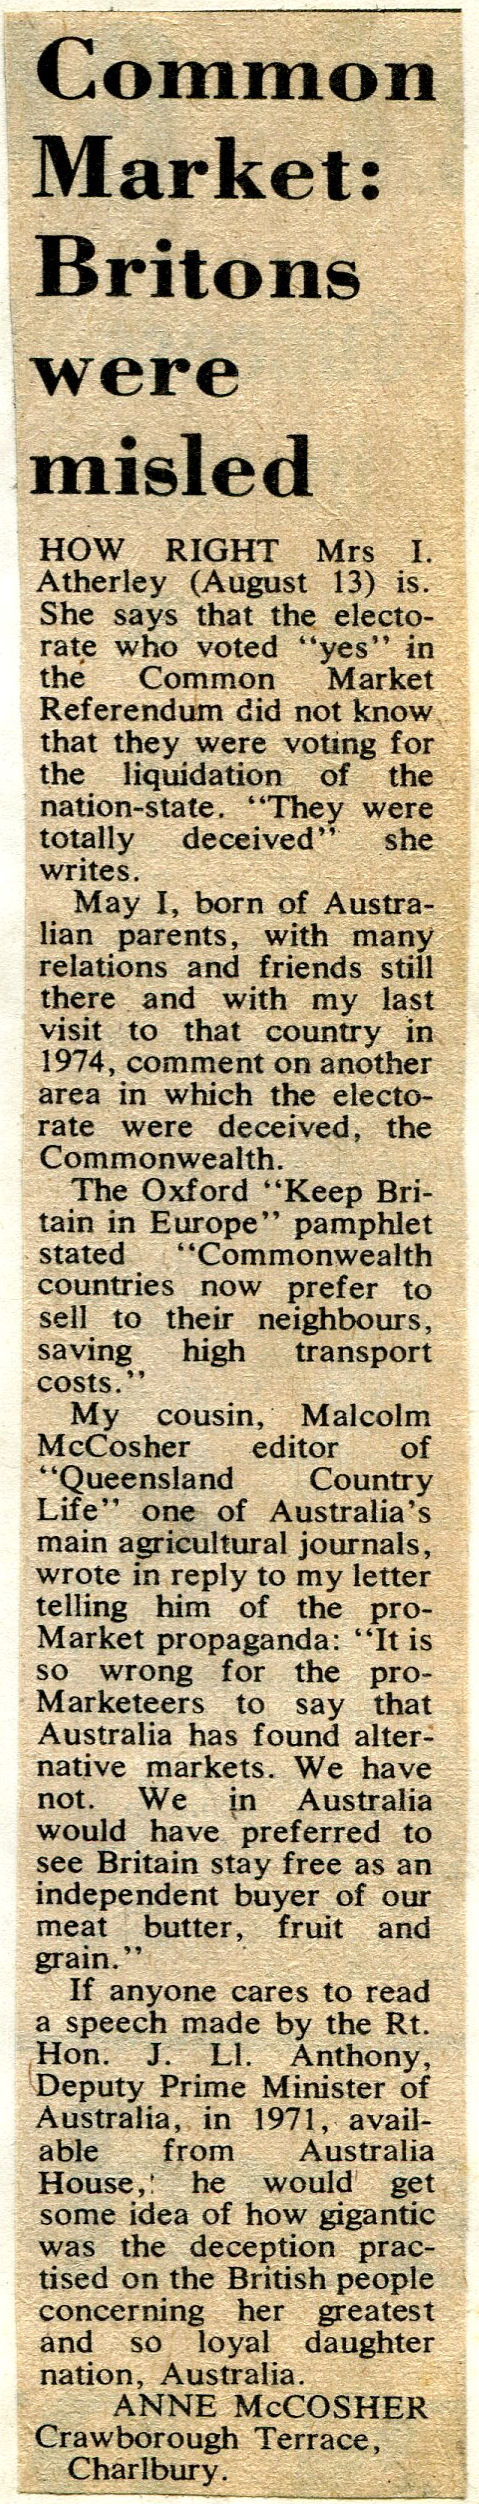 Anti EEC article 1976